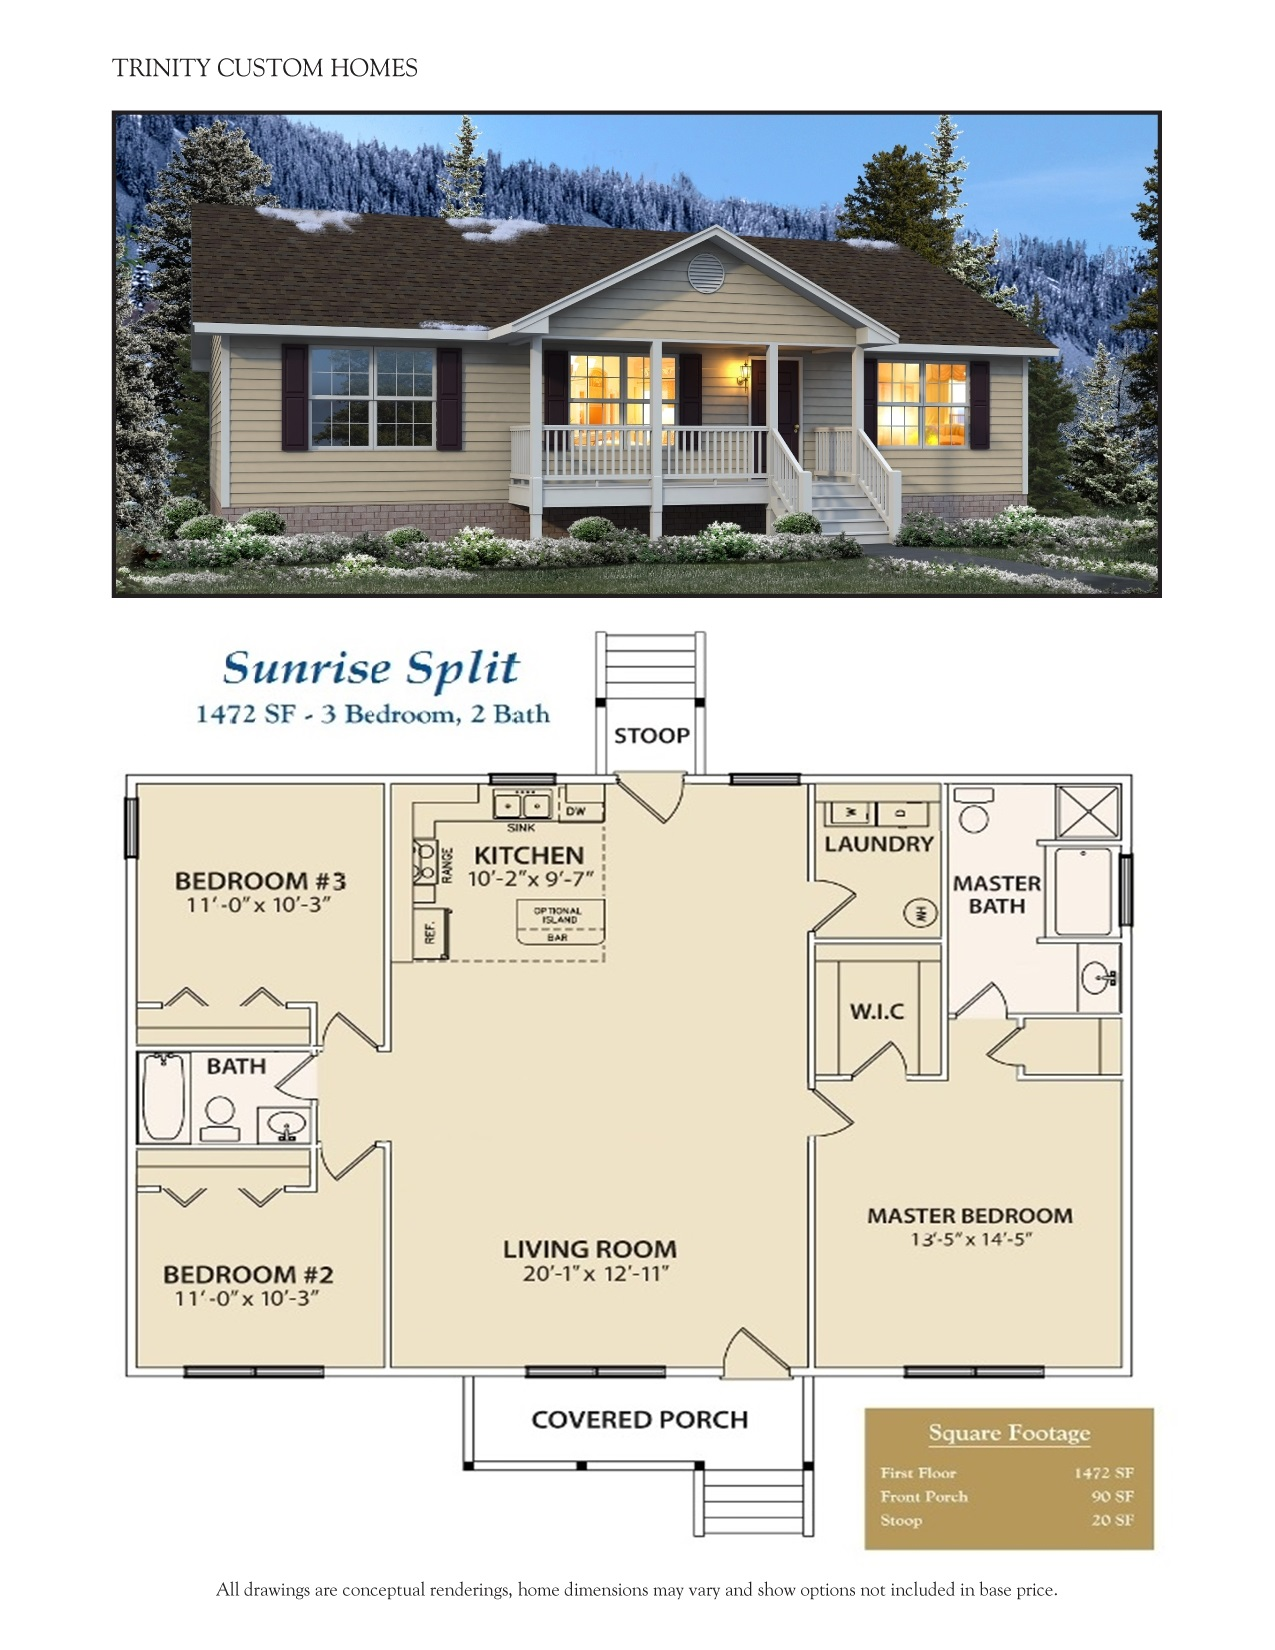 House Plan Small Home Design: Trinity Custom Homes Georgia